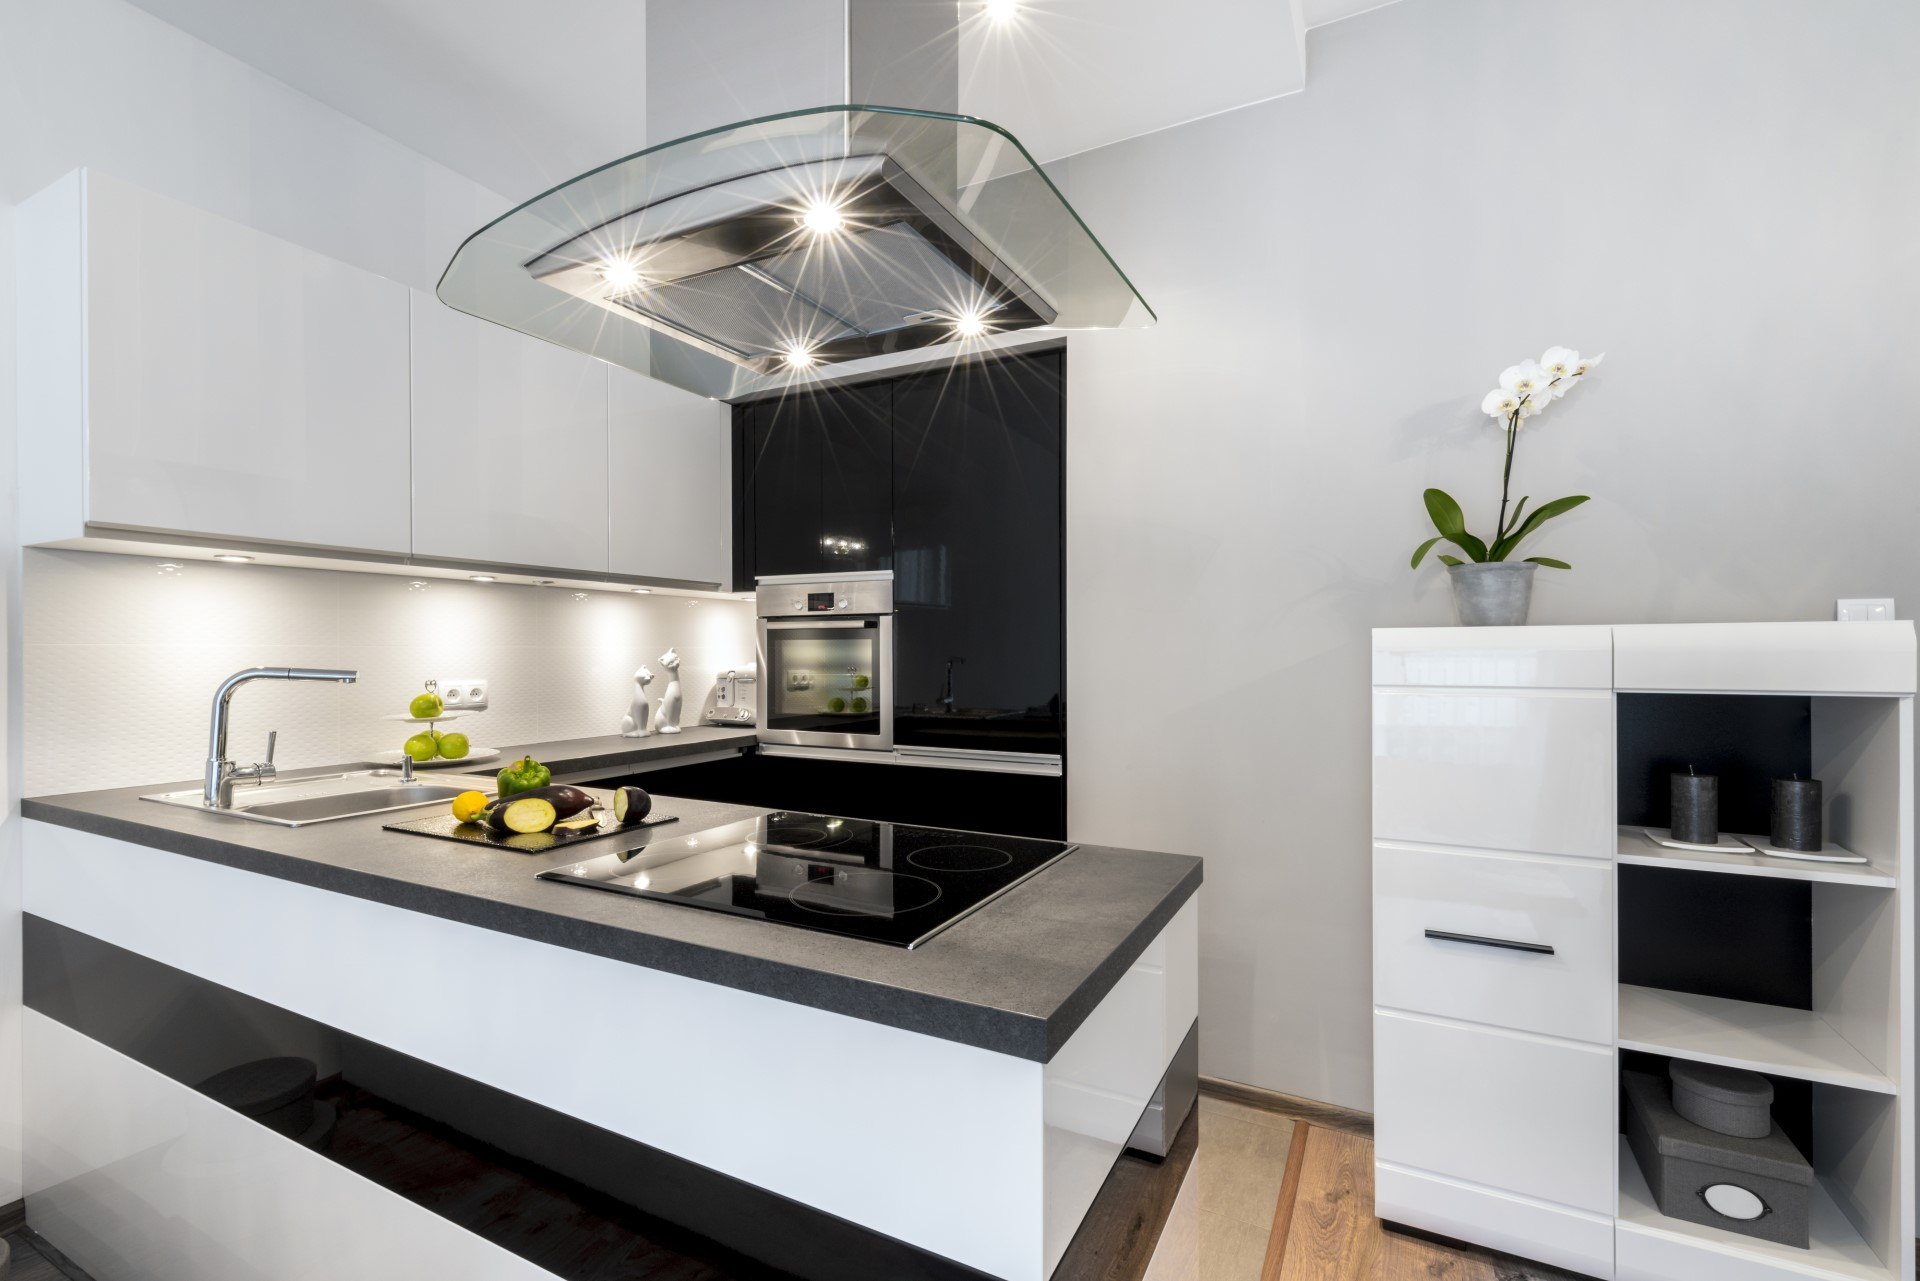 If you're looking for that edgy and cool kitchen layout, this modern design nails it. It comes with a useful functionality of using darker colors for the heavy traffic areas followed by lighter colors which help brighten everything. The glass style range hood is pretty cool too.